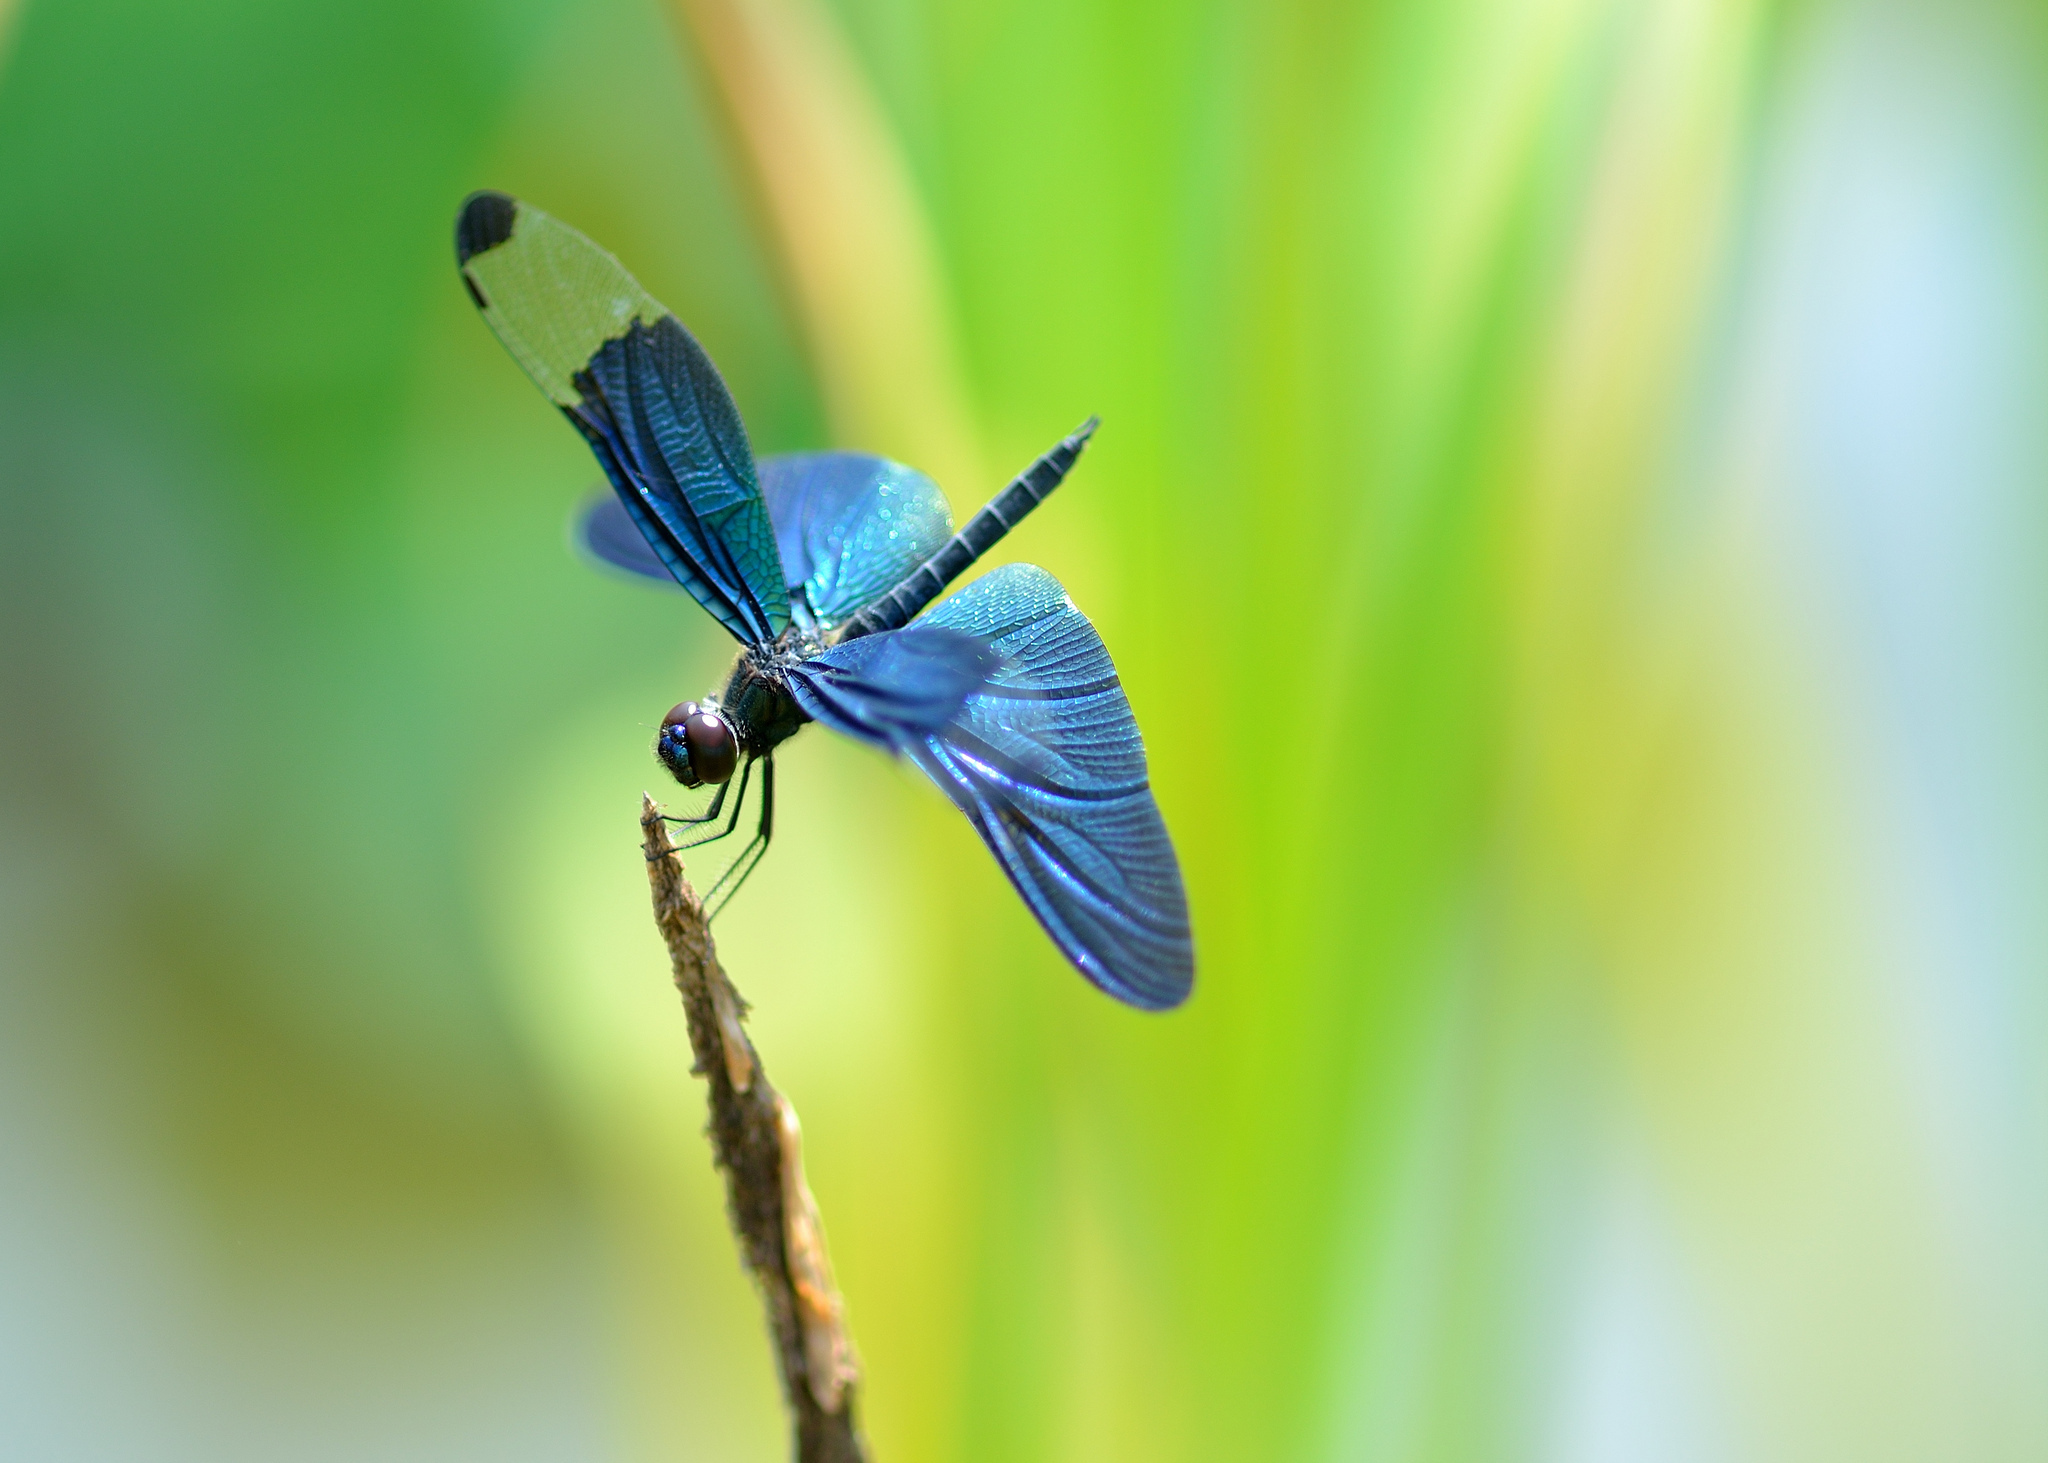 Free Download Blue Dragonfly Wallpaper For Android 3707 Wallpaper Wallpaper 2048x1463 For Your Desktop Mobile Tablet Explore 49 Dragonfly Wallpaper For Desktop Dragonfly Wallpapers Free Dragonfly Wallpaper Downloads 3d Dragonfly Wallpaper